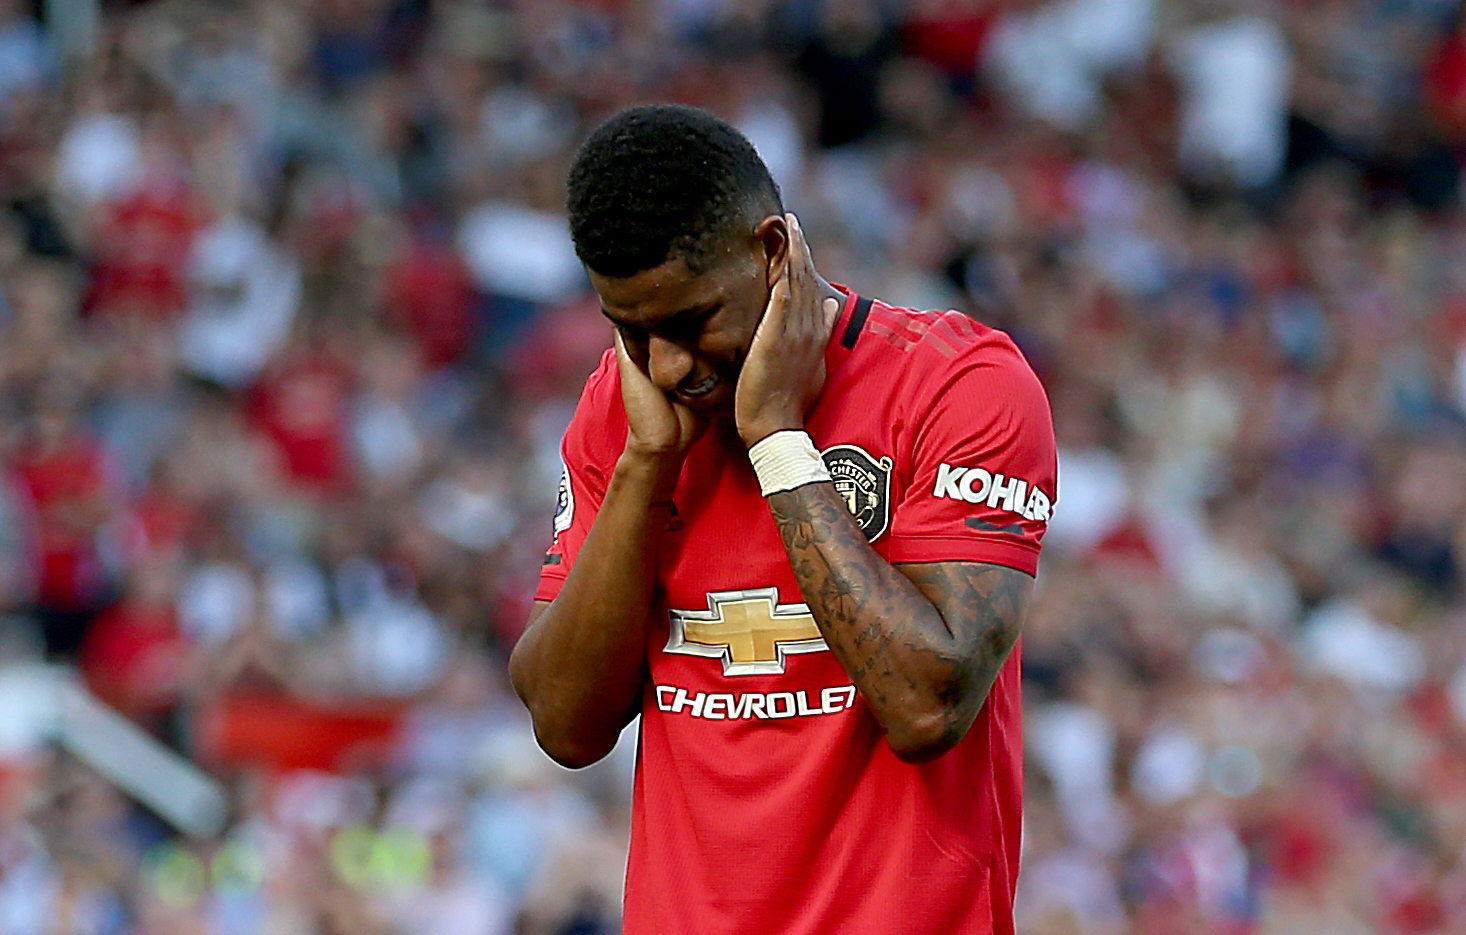 Premier League: Man United 1 Crystal Palace 2: Van Aanholt earns shock win